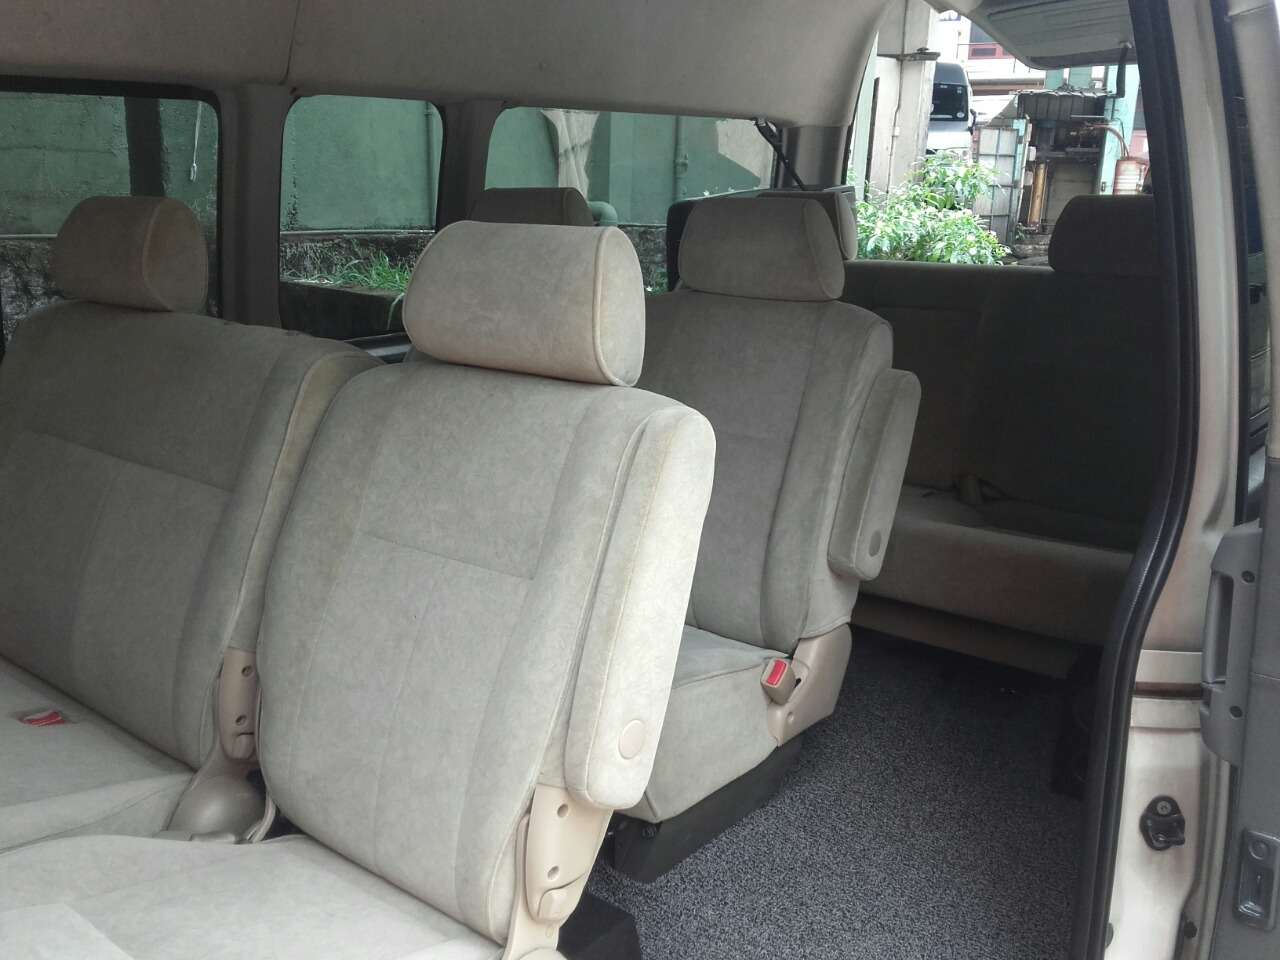 nine adjustable passenger seats and rear space for baggage